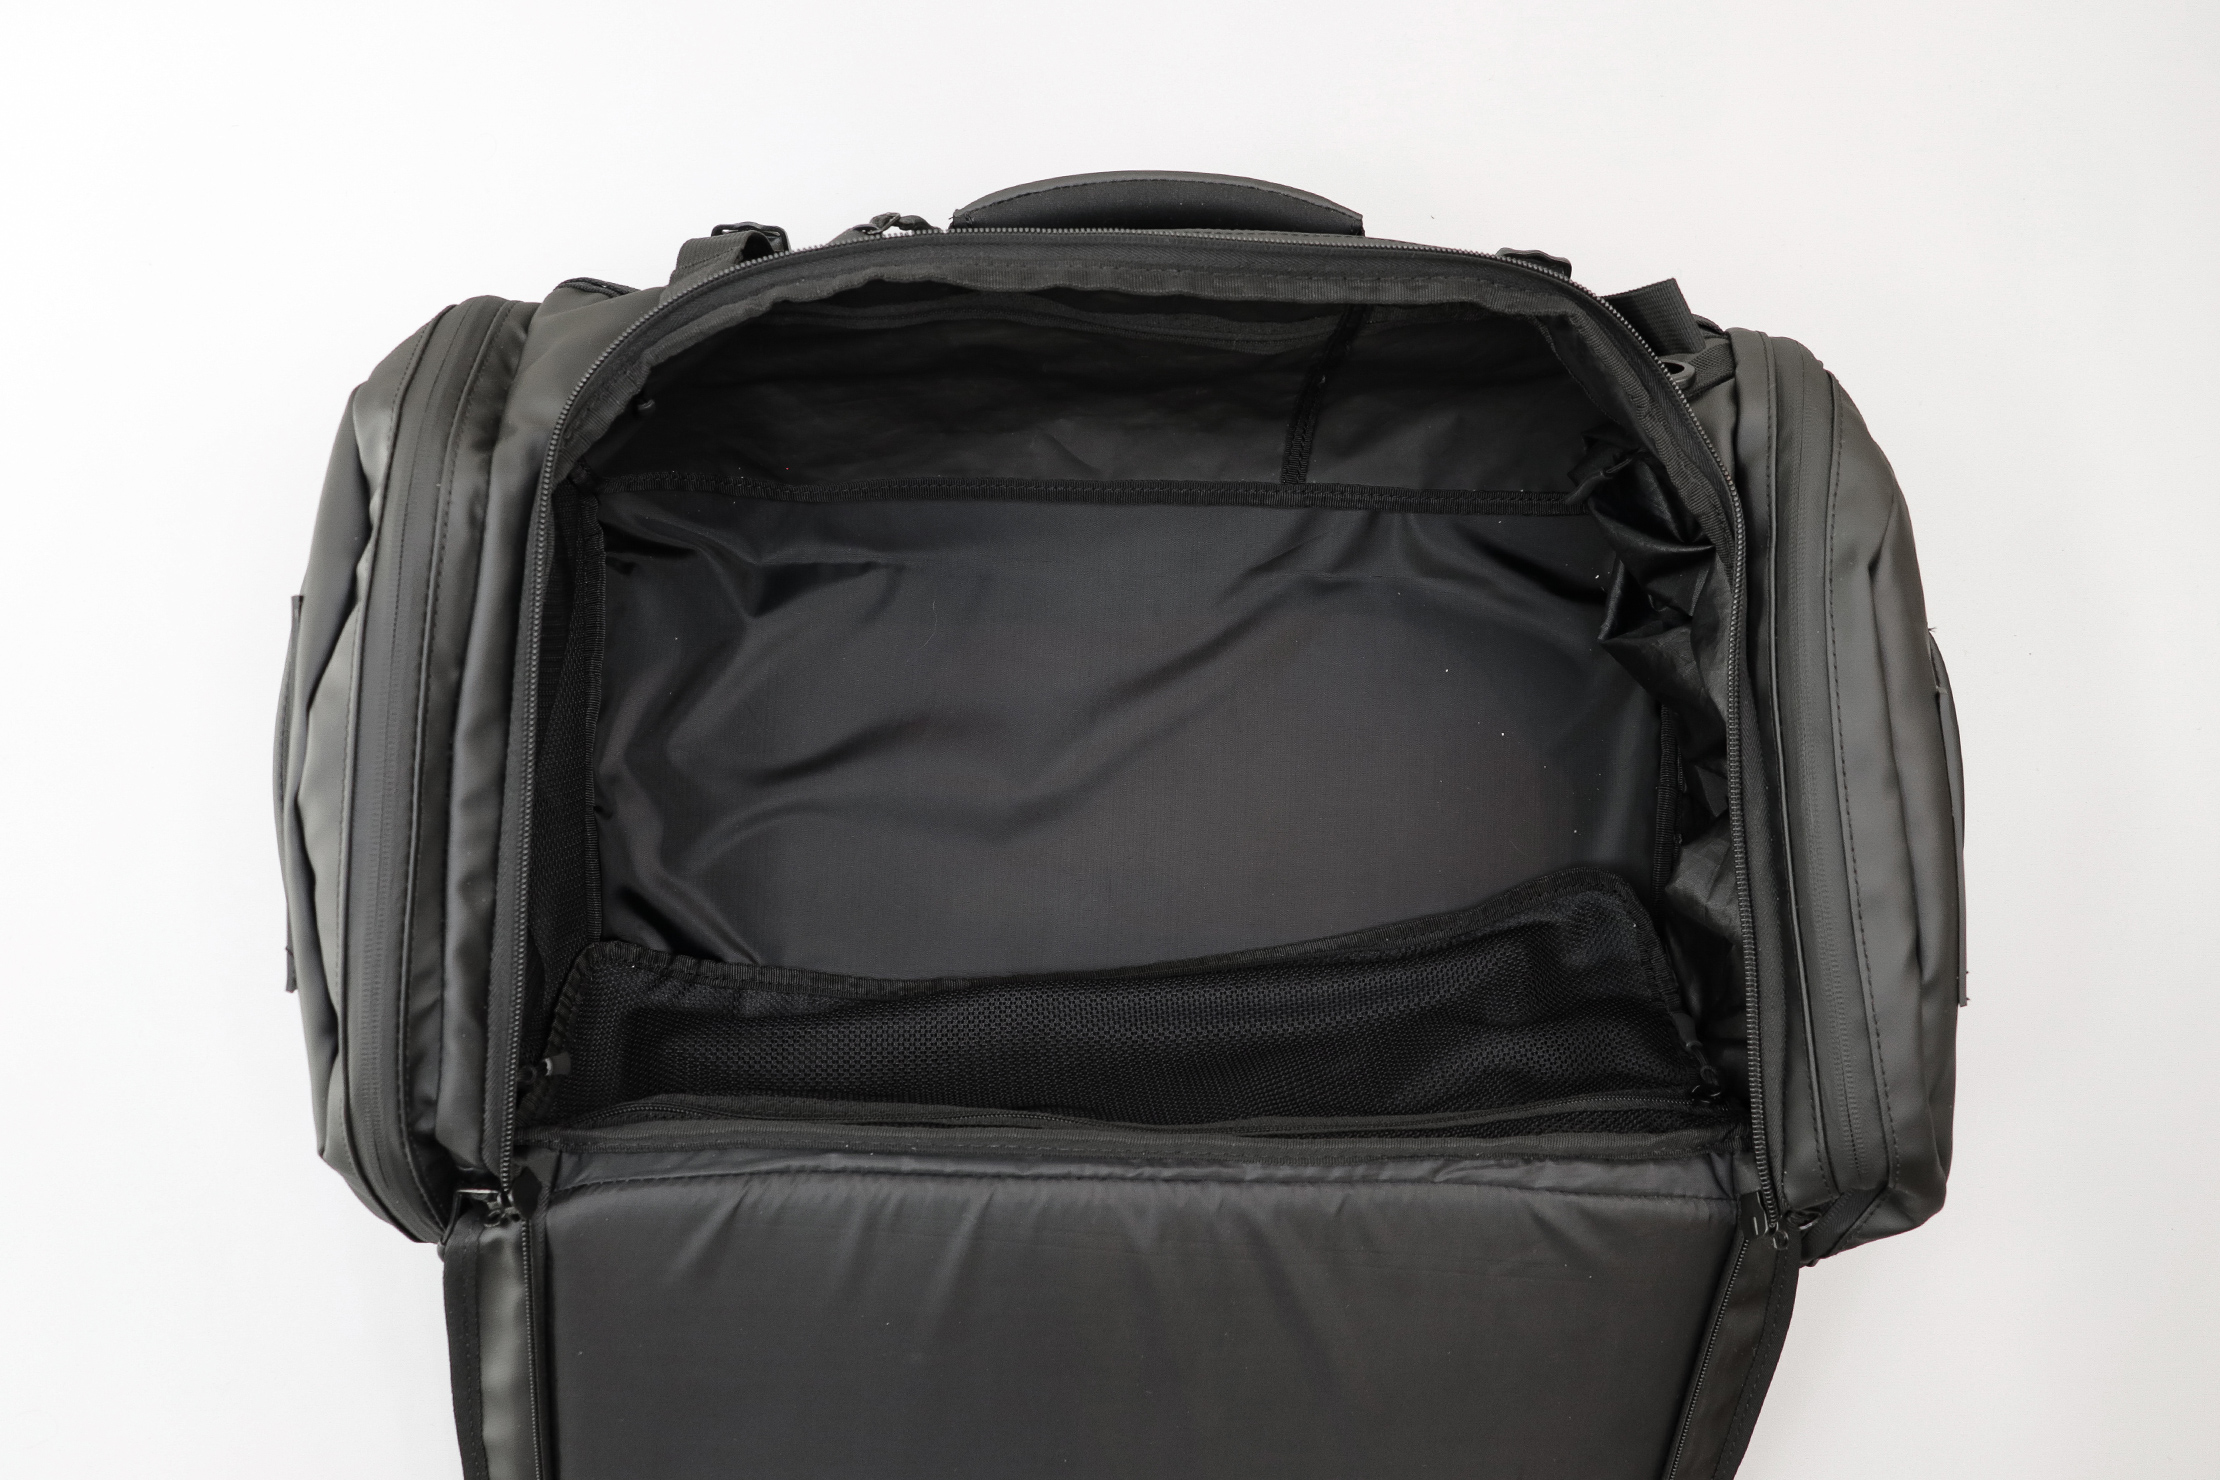 WANDRD HEXAD Carryall Duffel Main Compartment